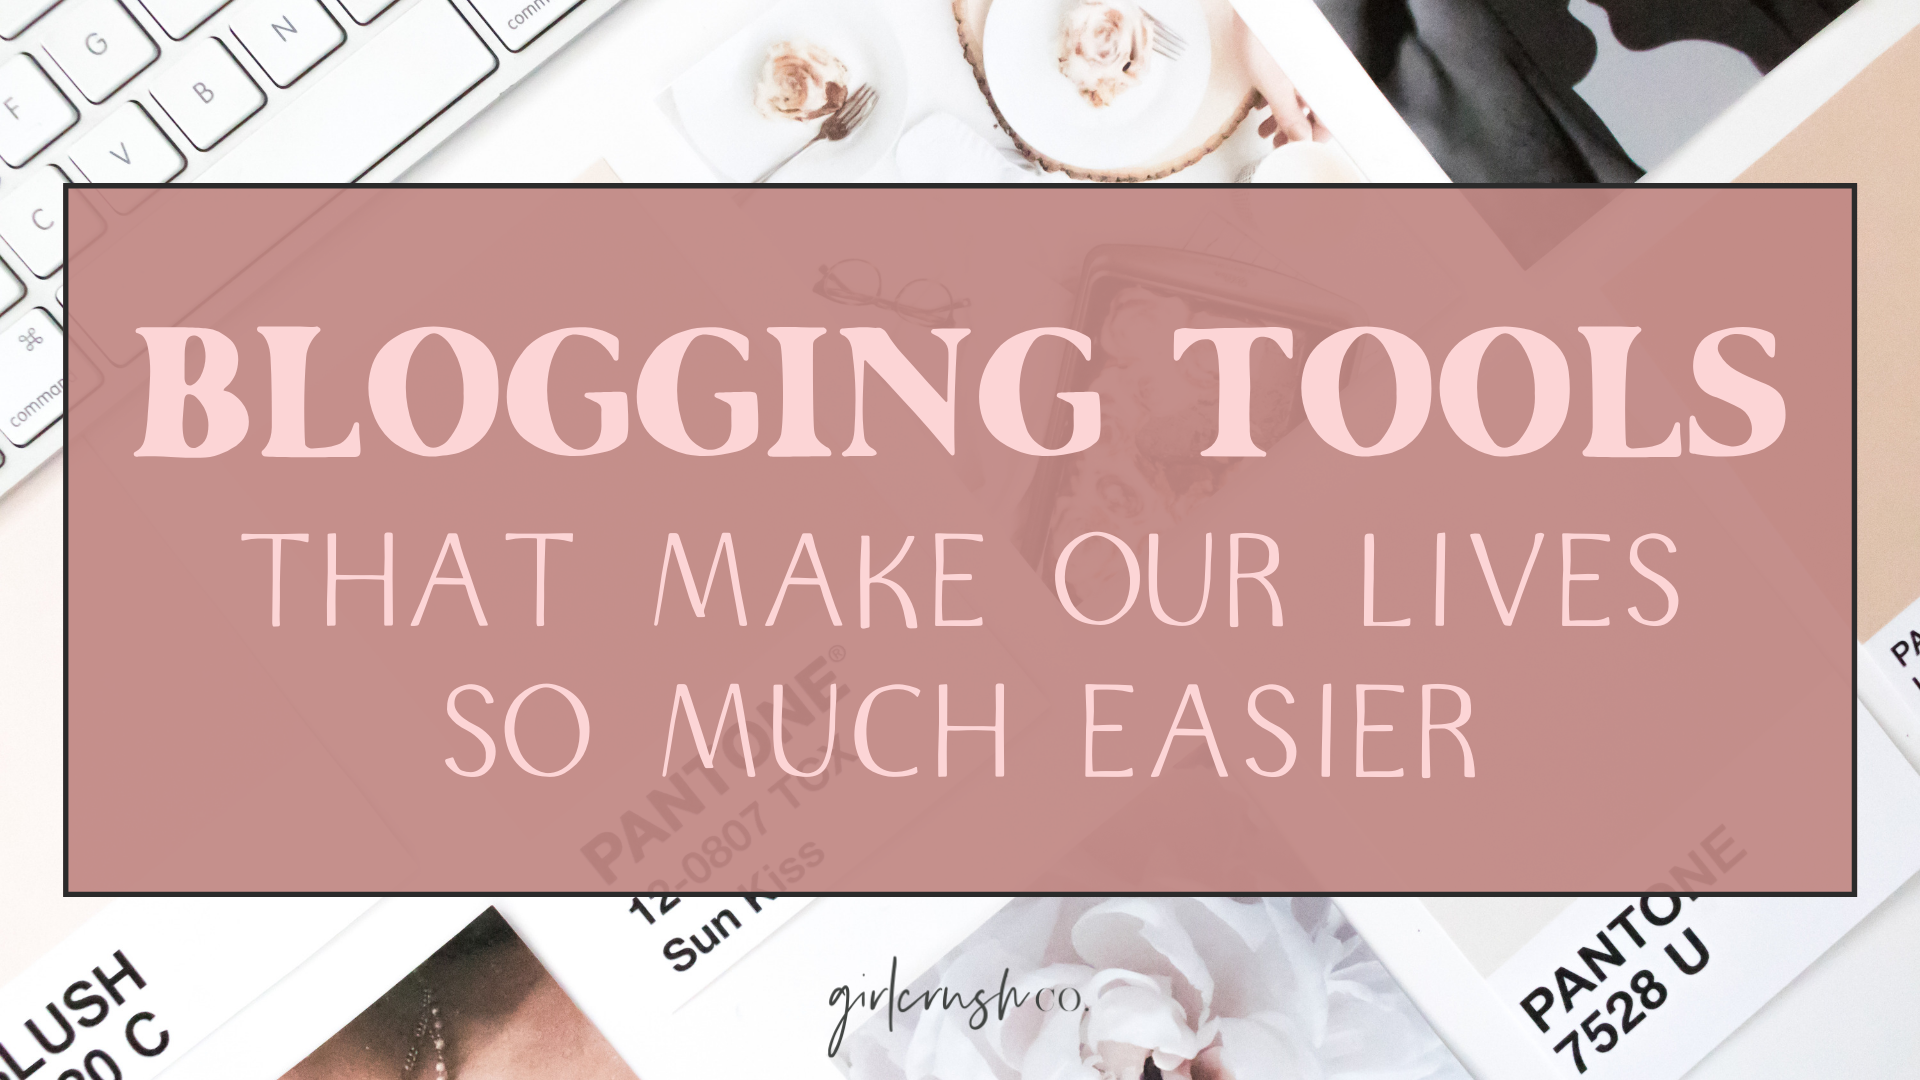 blogging tools that make our lives so much easier